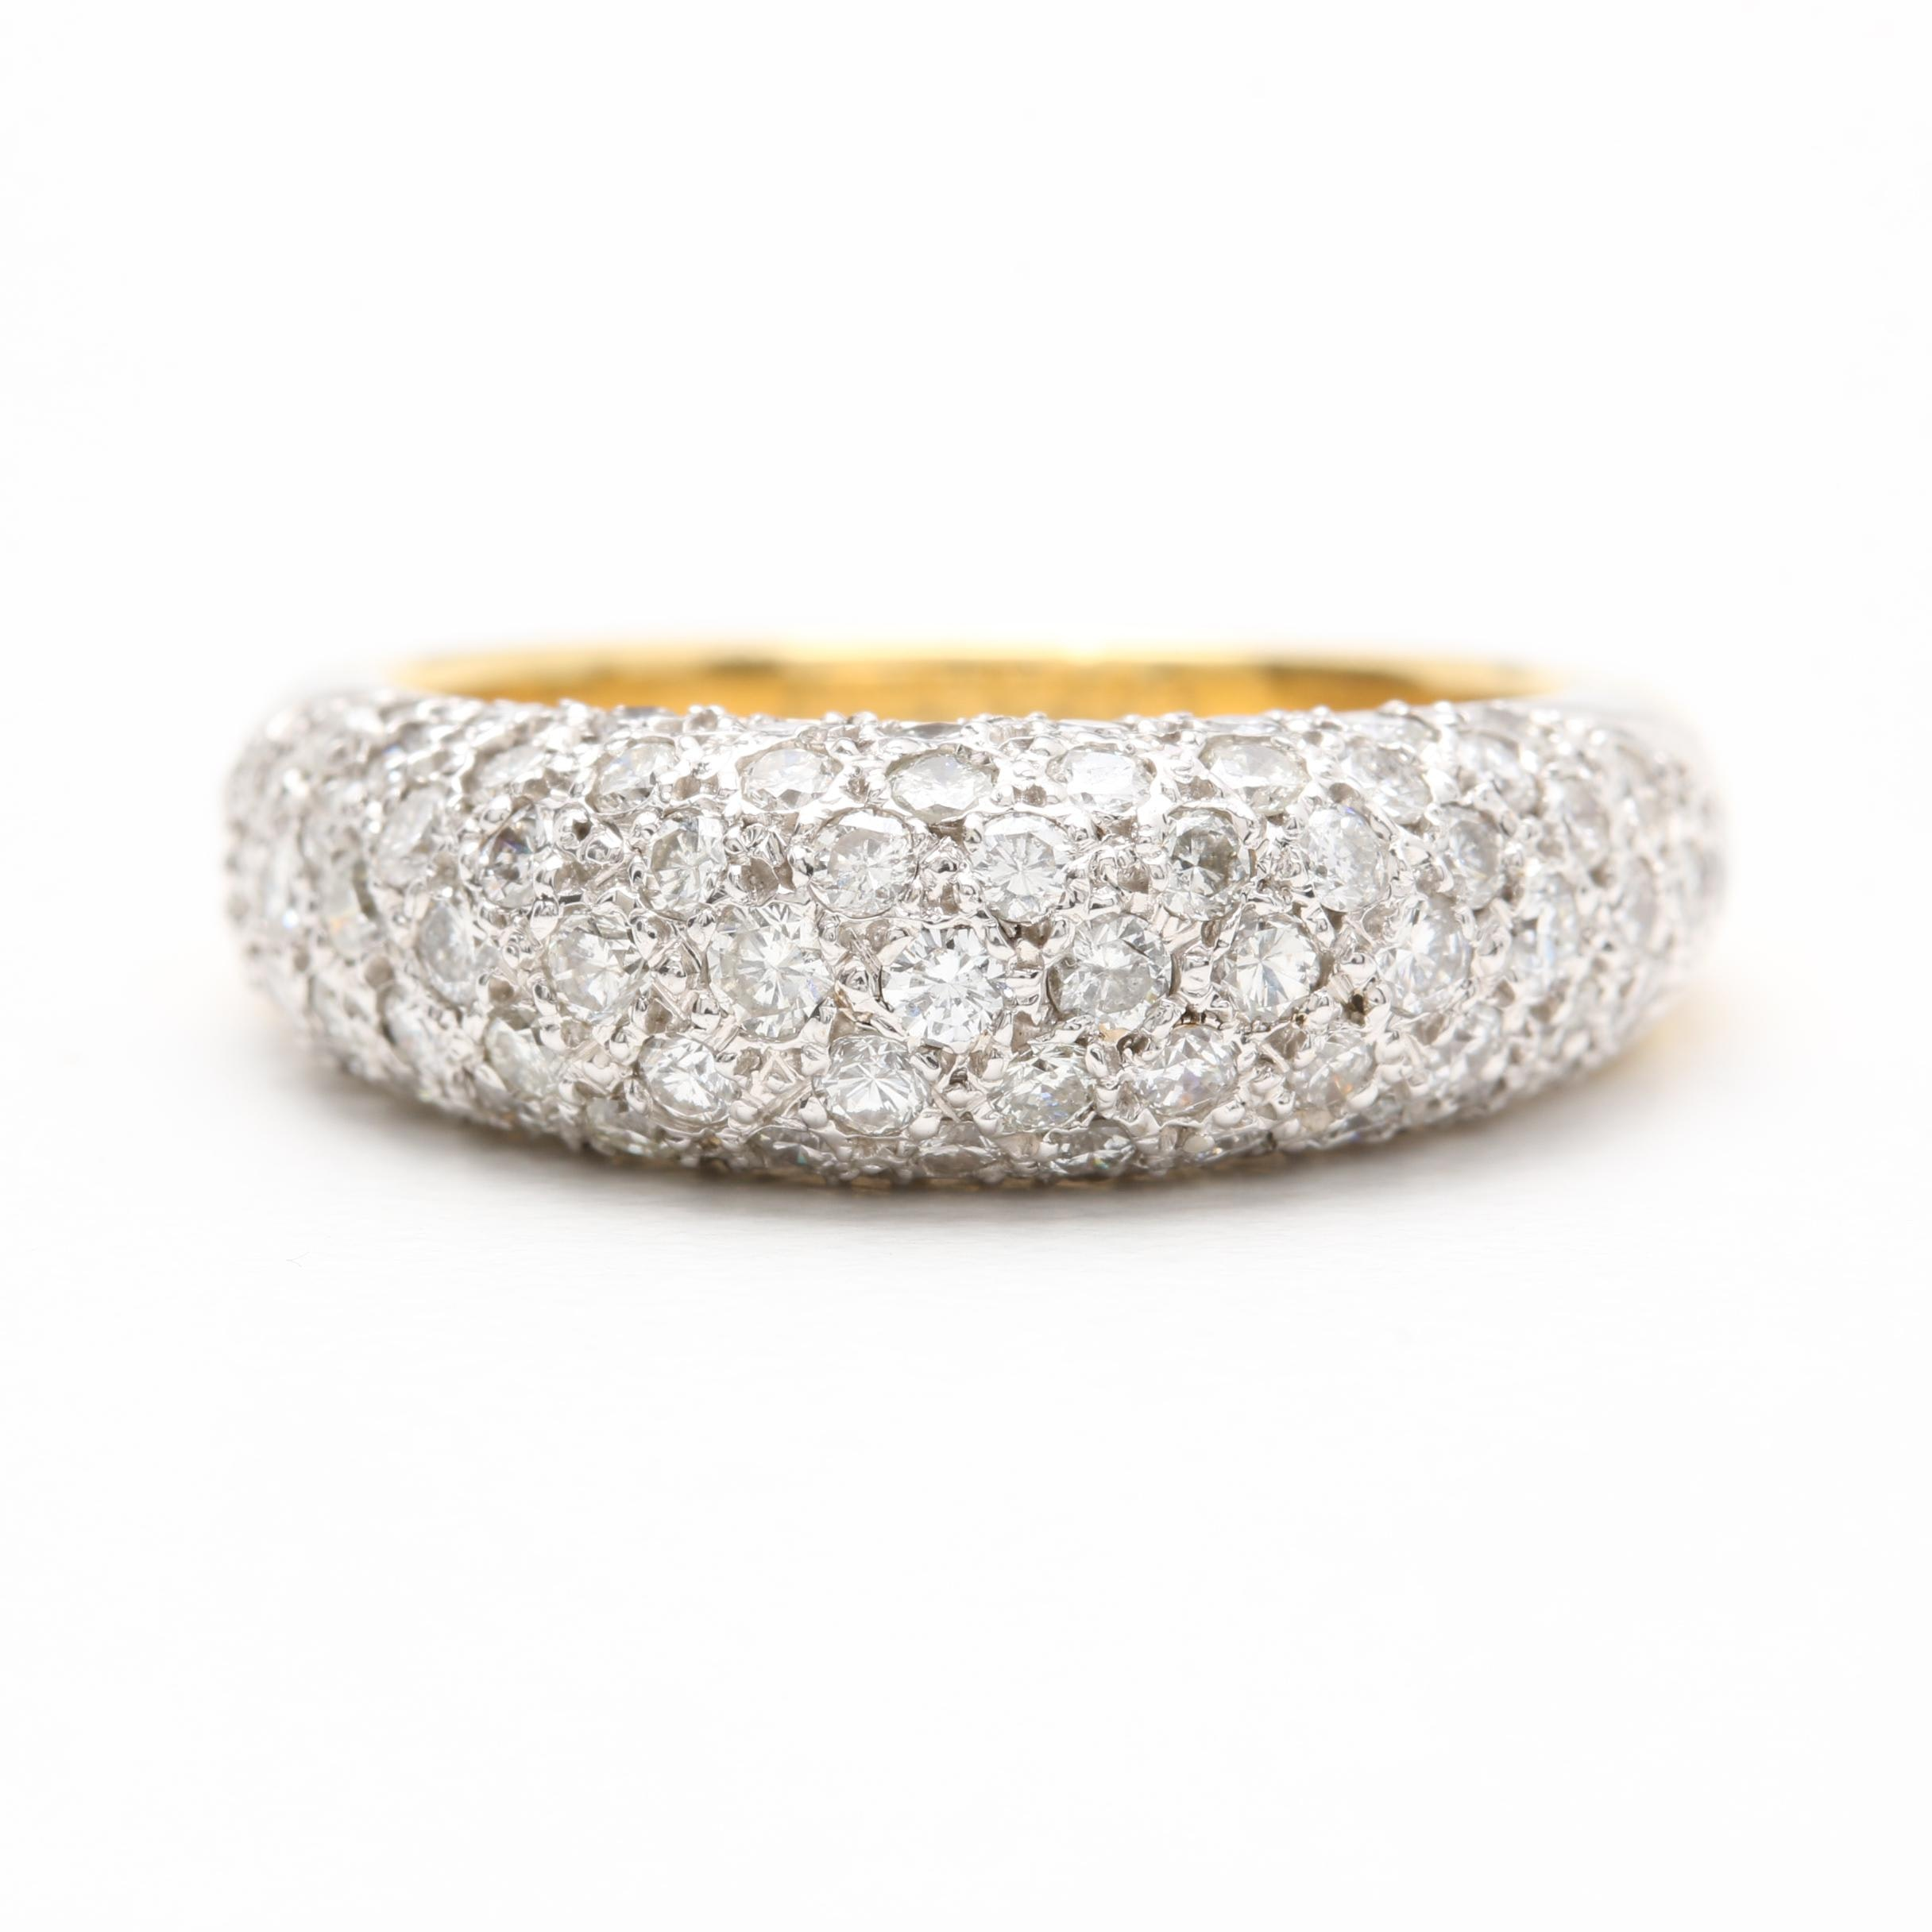 18K Yellow Gold 1.46 CTW Diamond Pavé Ring